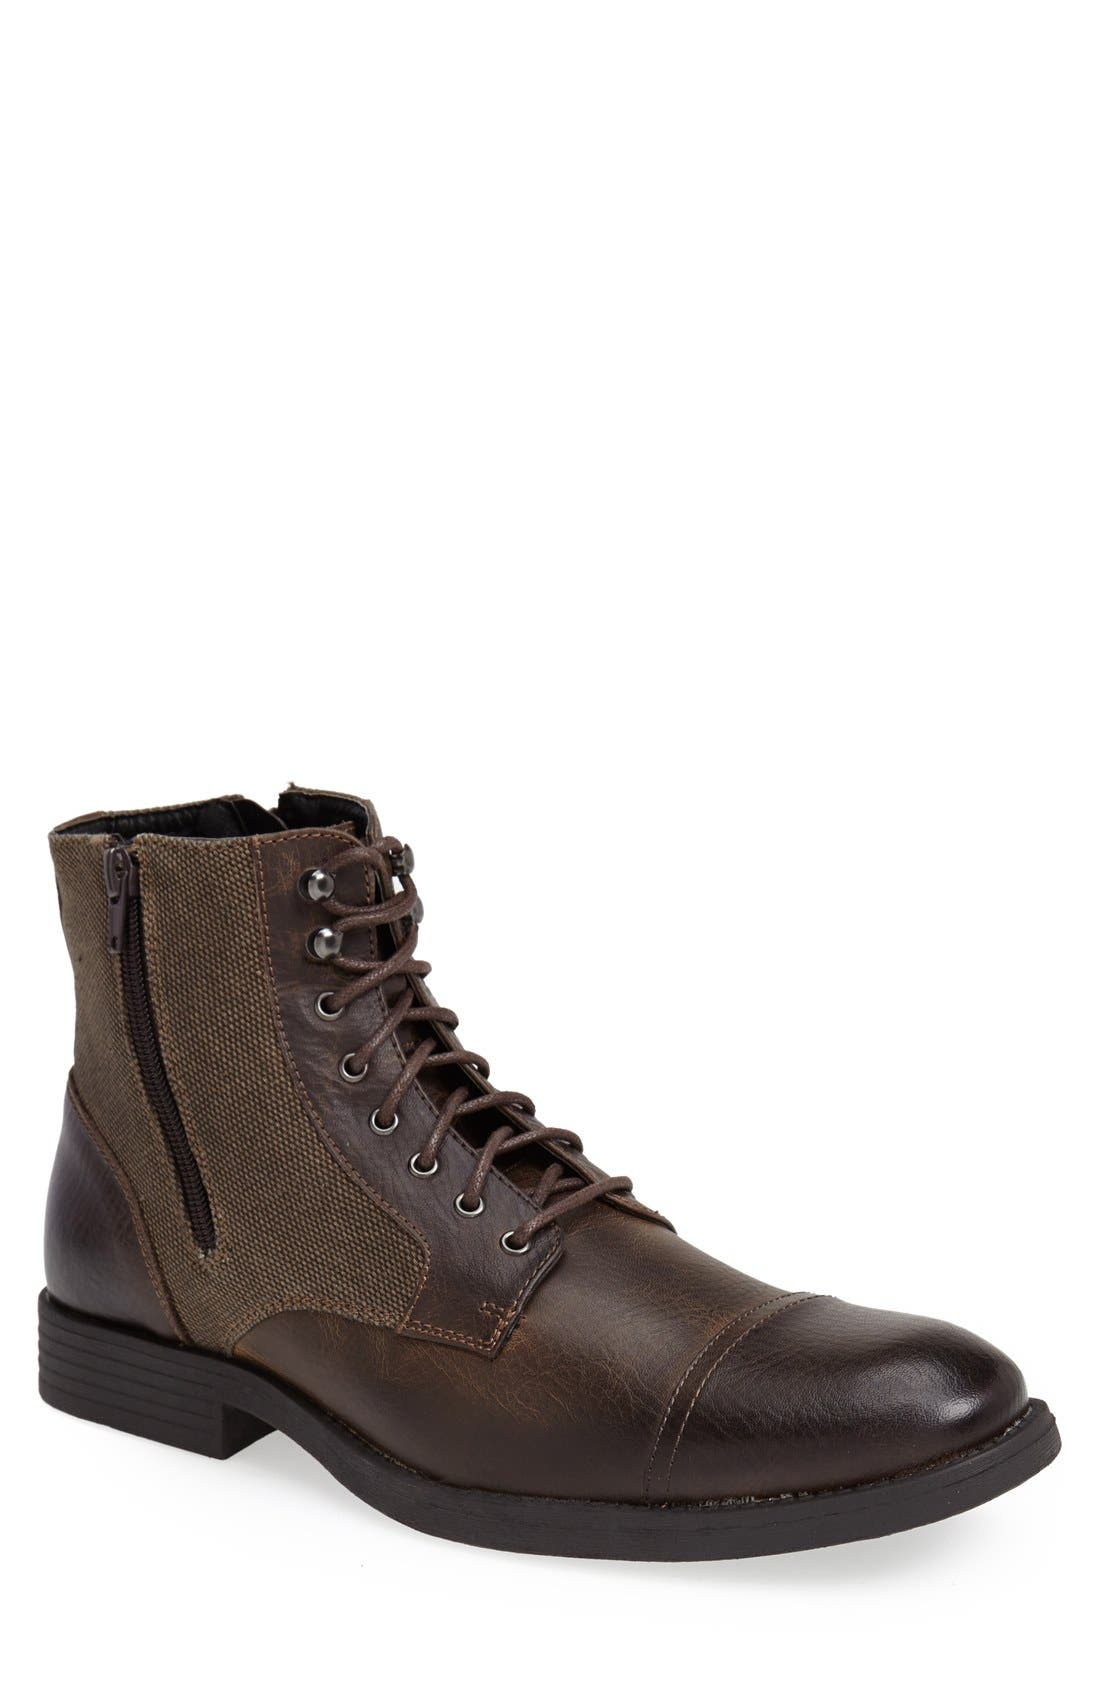 ROBERT WAYNE 'Edgar' Cap Toe Boot